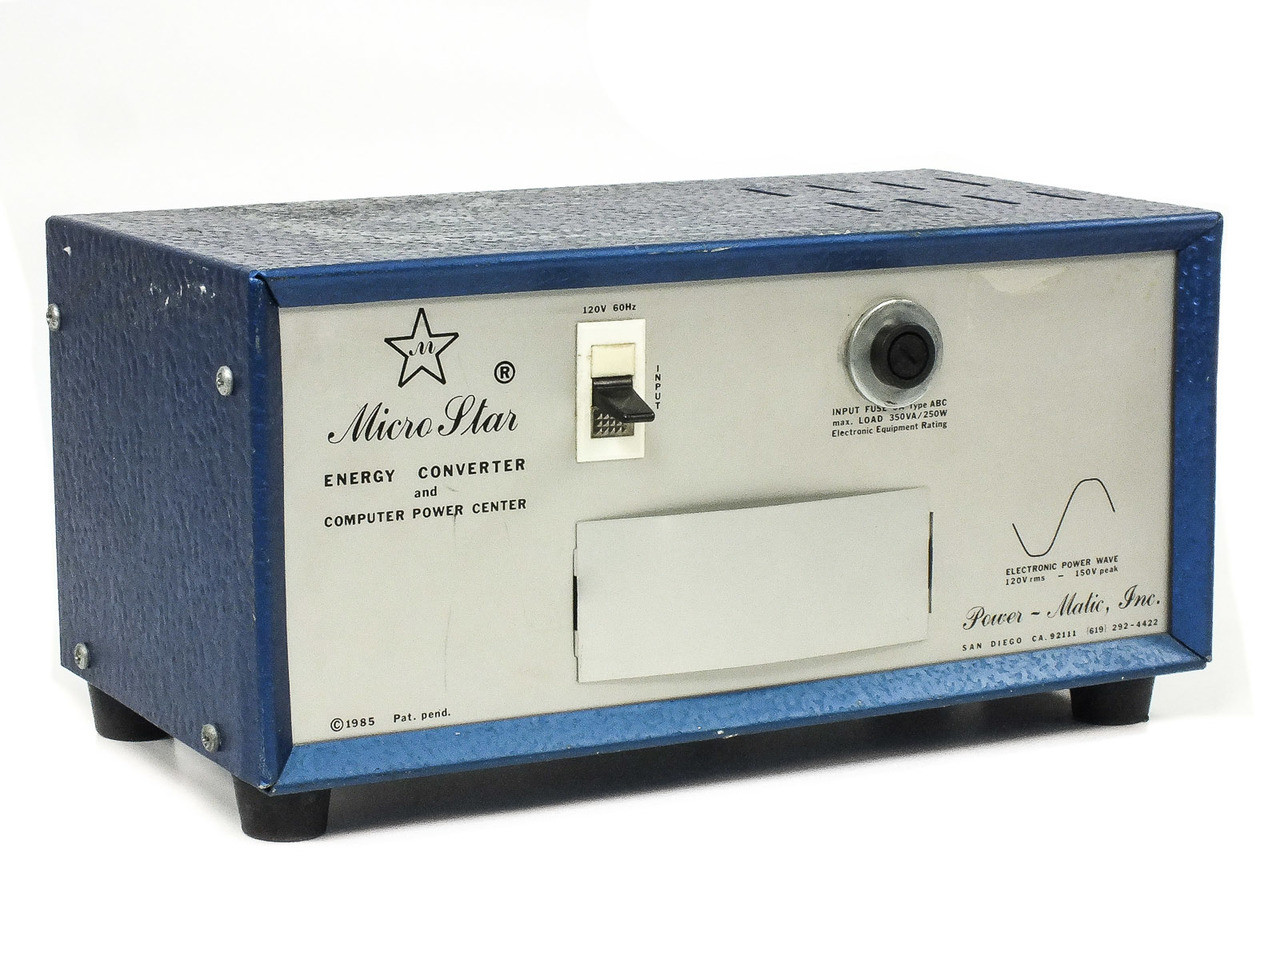 Micro Star MS-136 3-Port 120 Volt AC Energy Converter / Line Filter 10-921